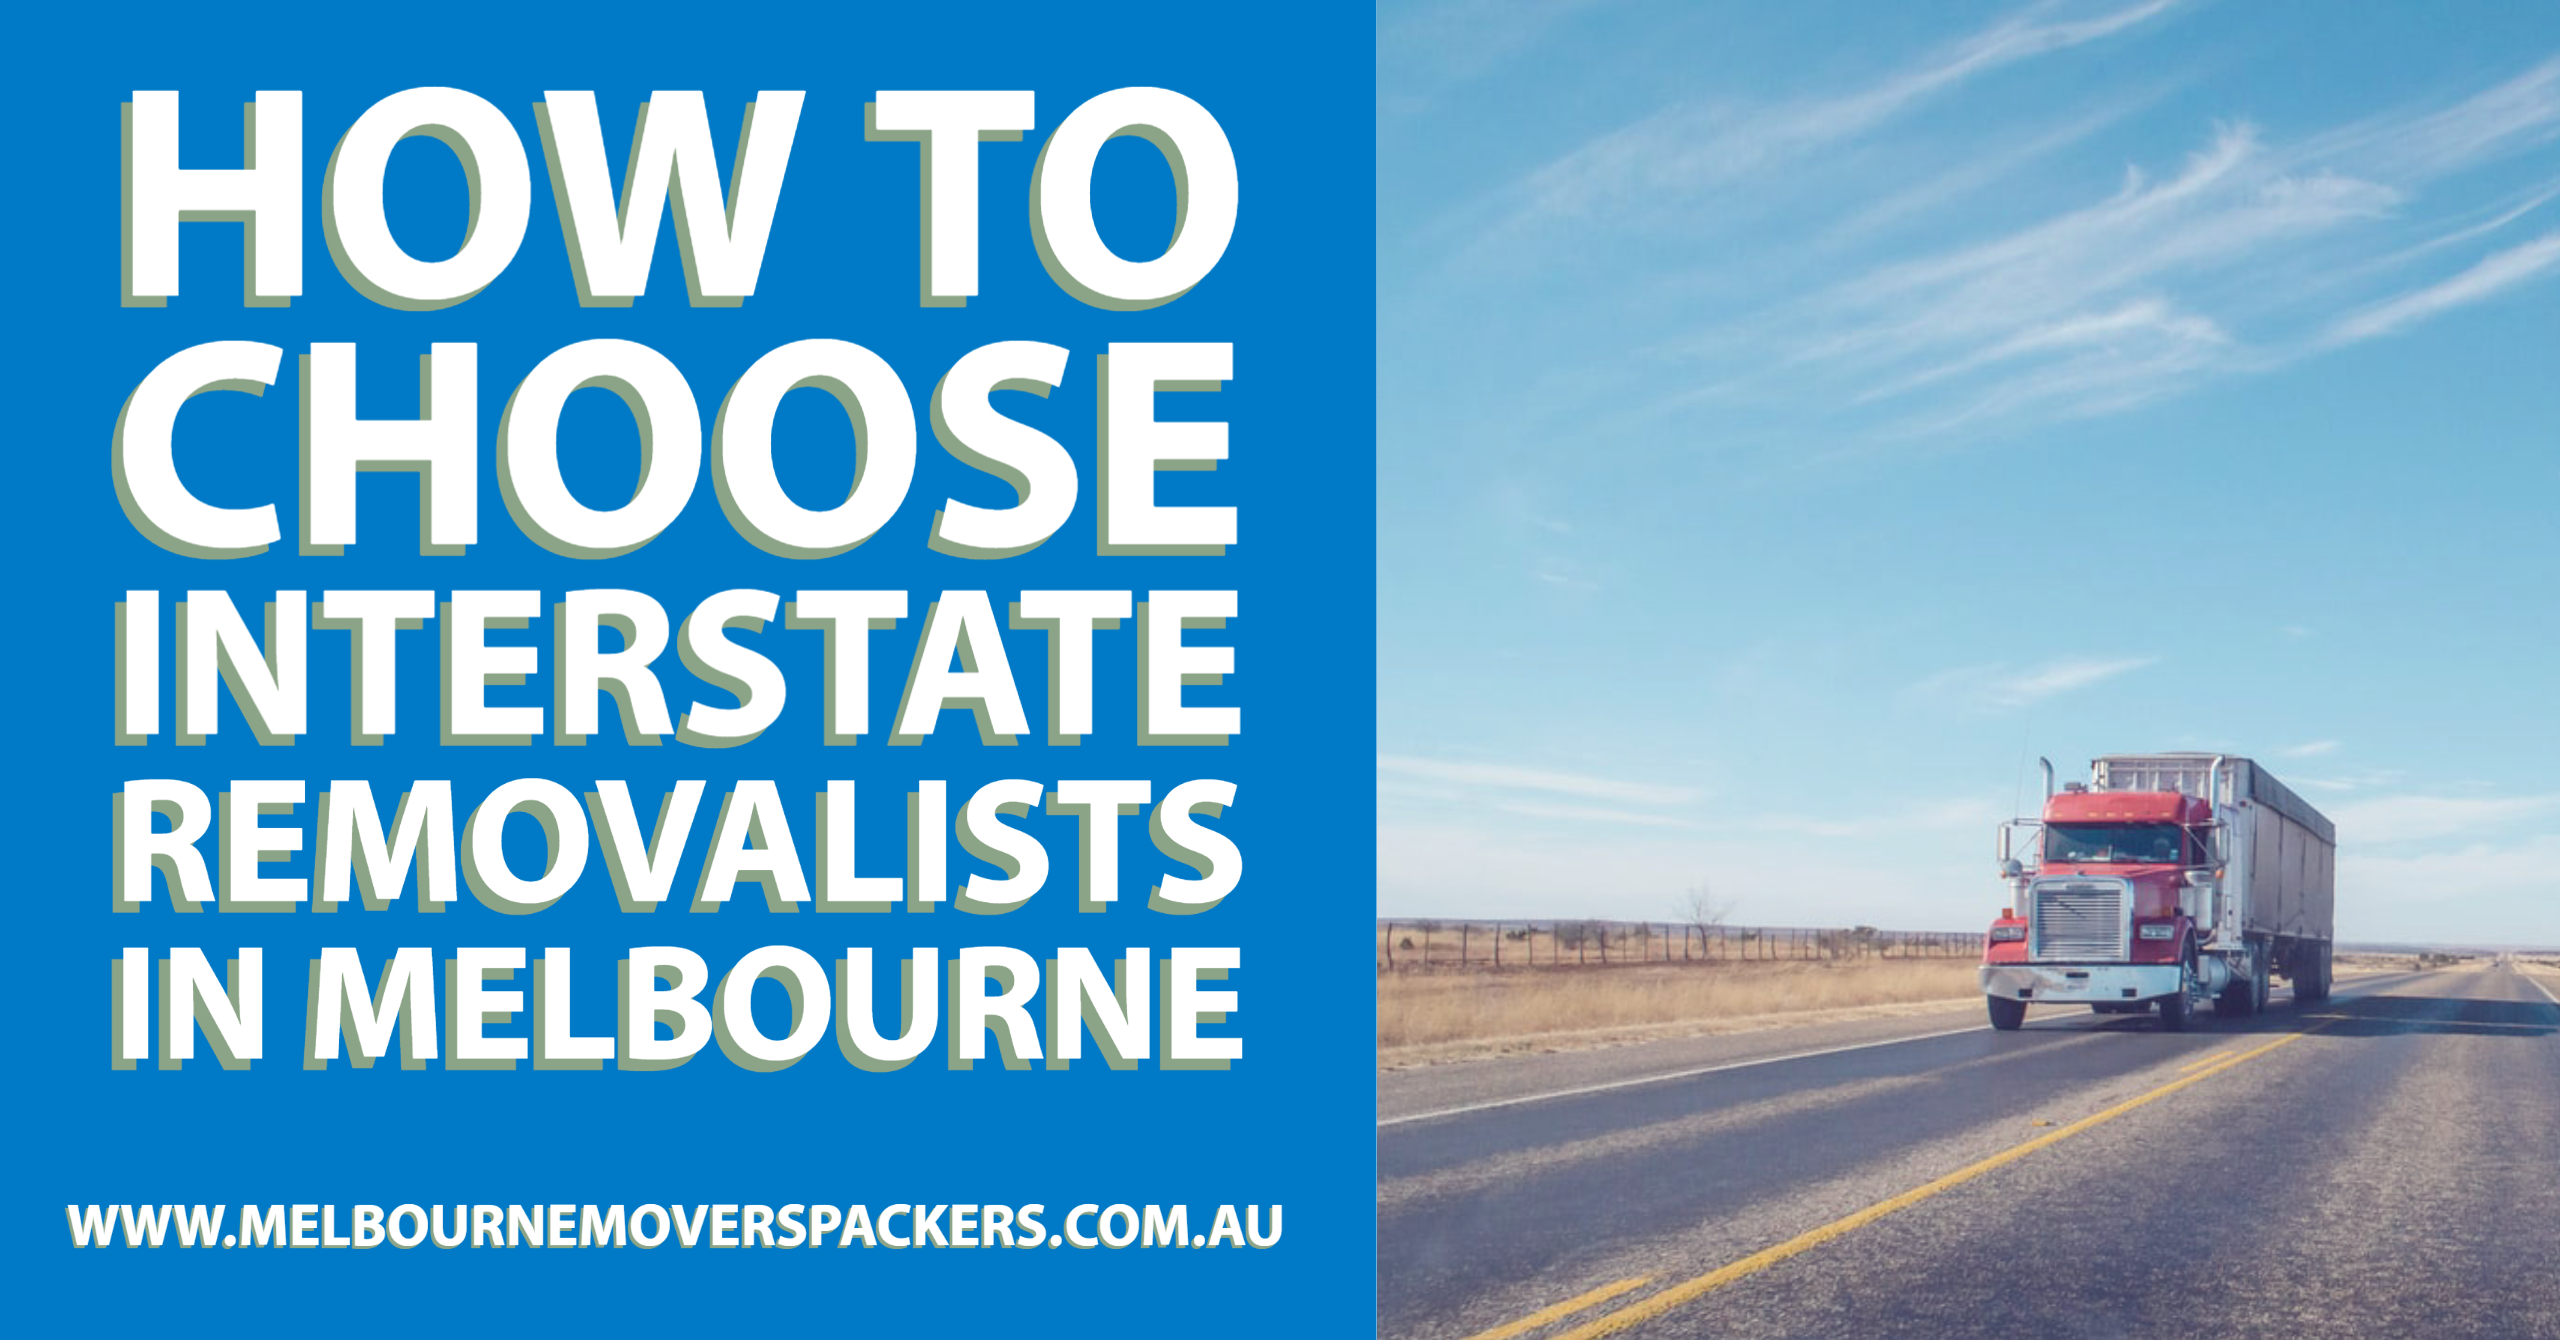 How to Choose Interstate Removalists in Melbourne